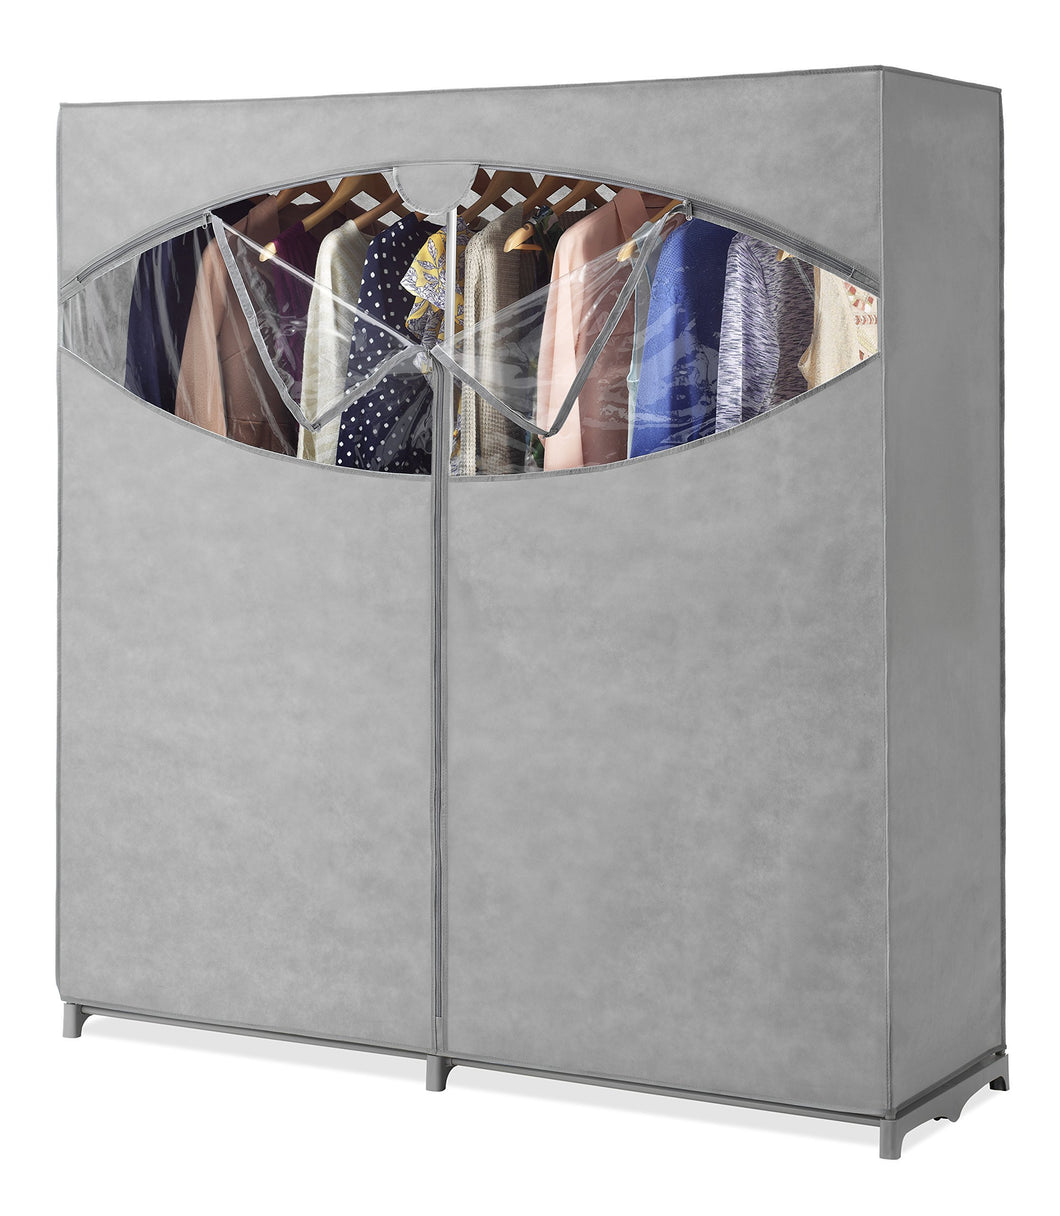 Related whitmor portable wardrobe clothes storage organizer closet with hanging rack extra wide grey color no tool assembly extra strong durable 60l x 19 5w x 64